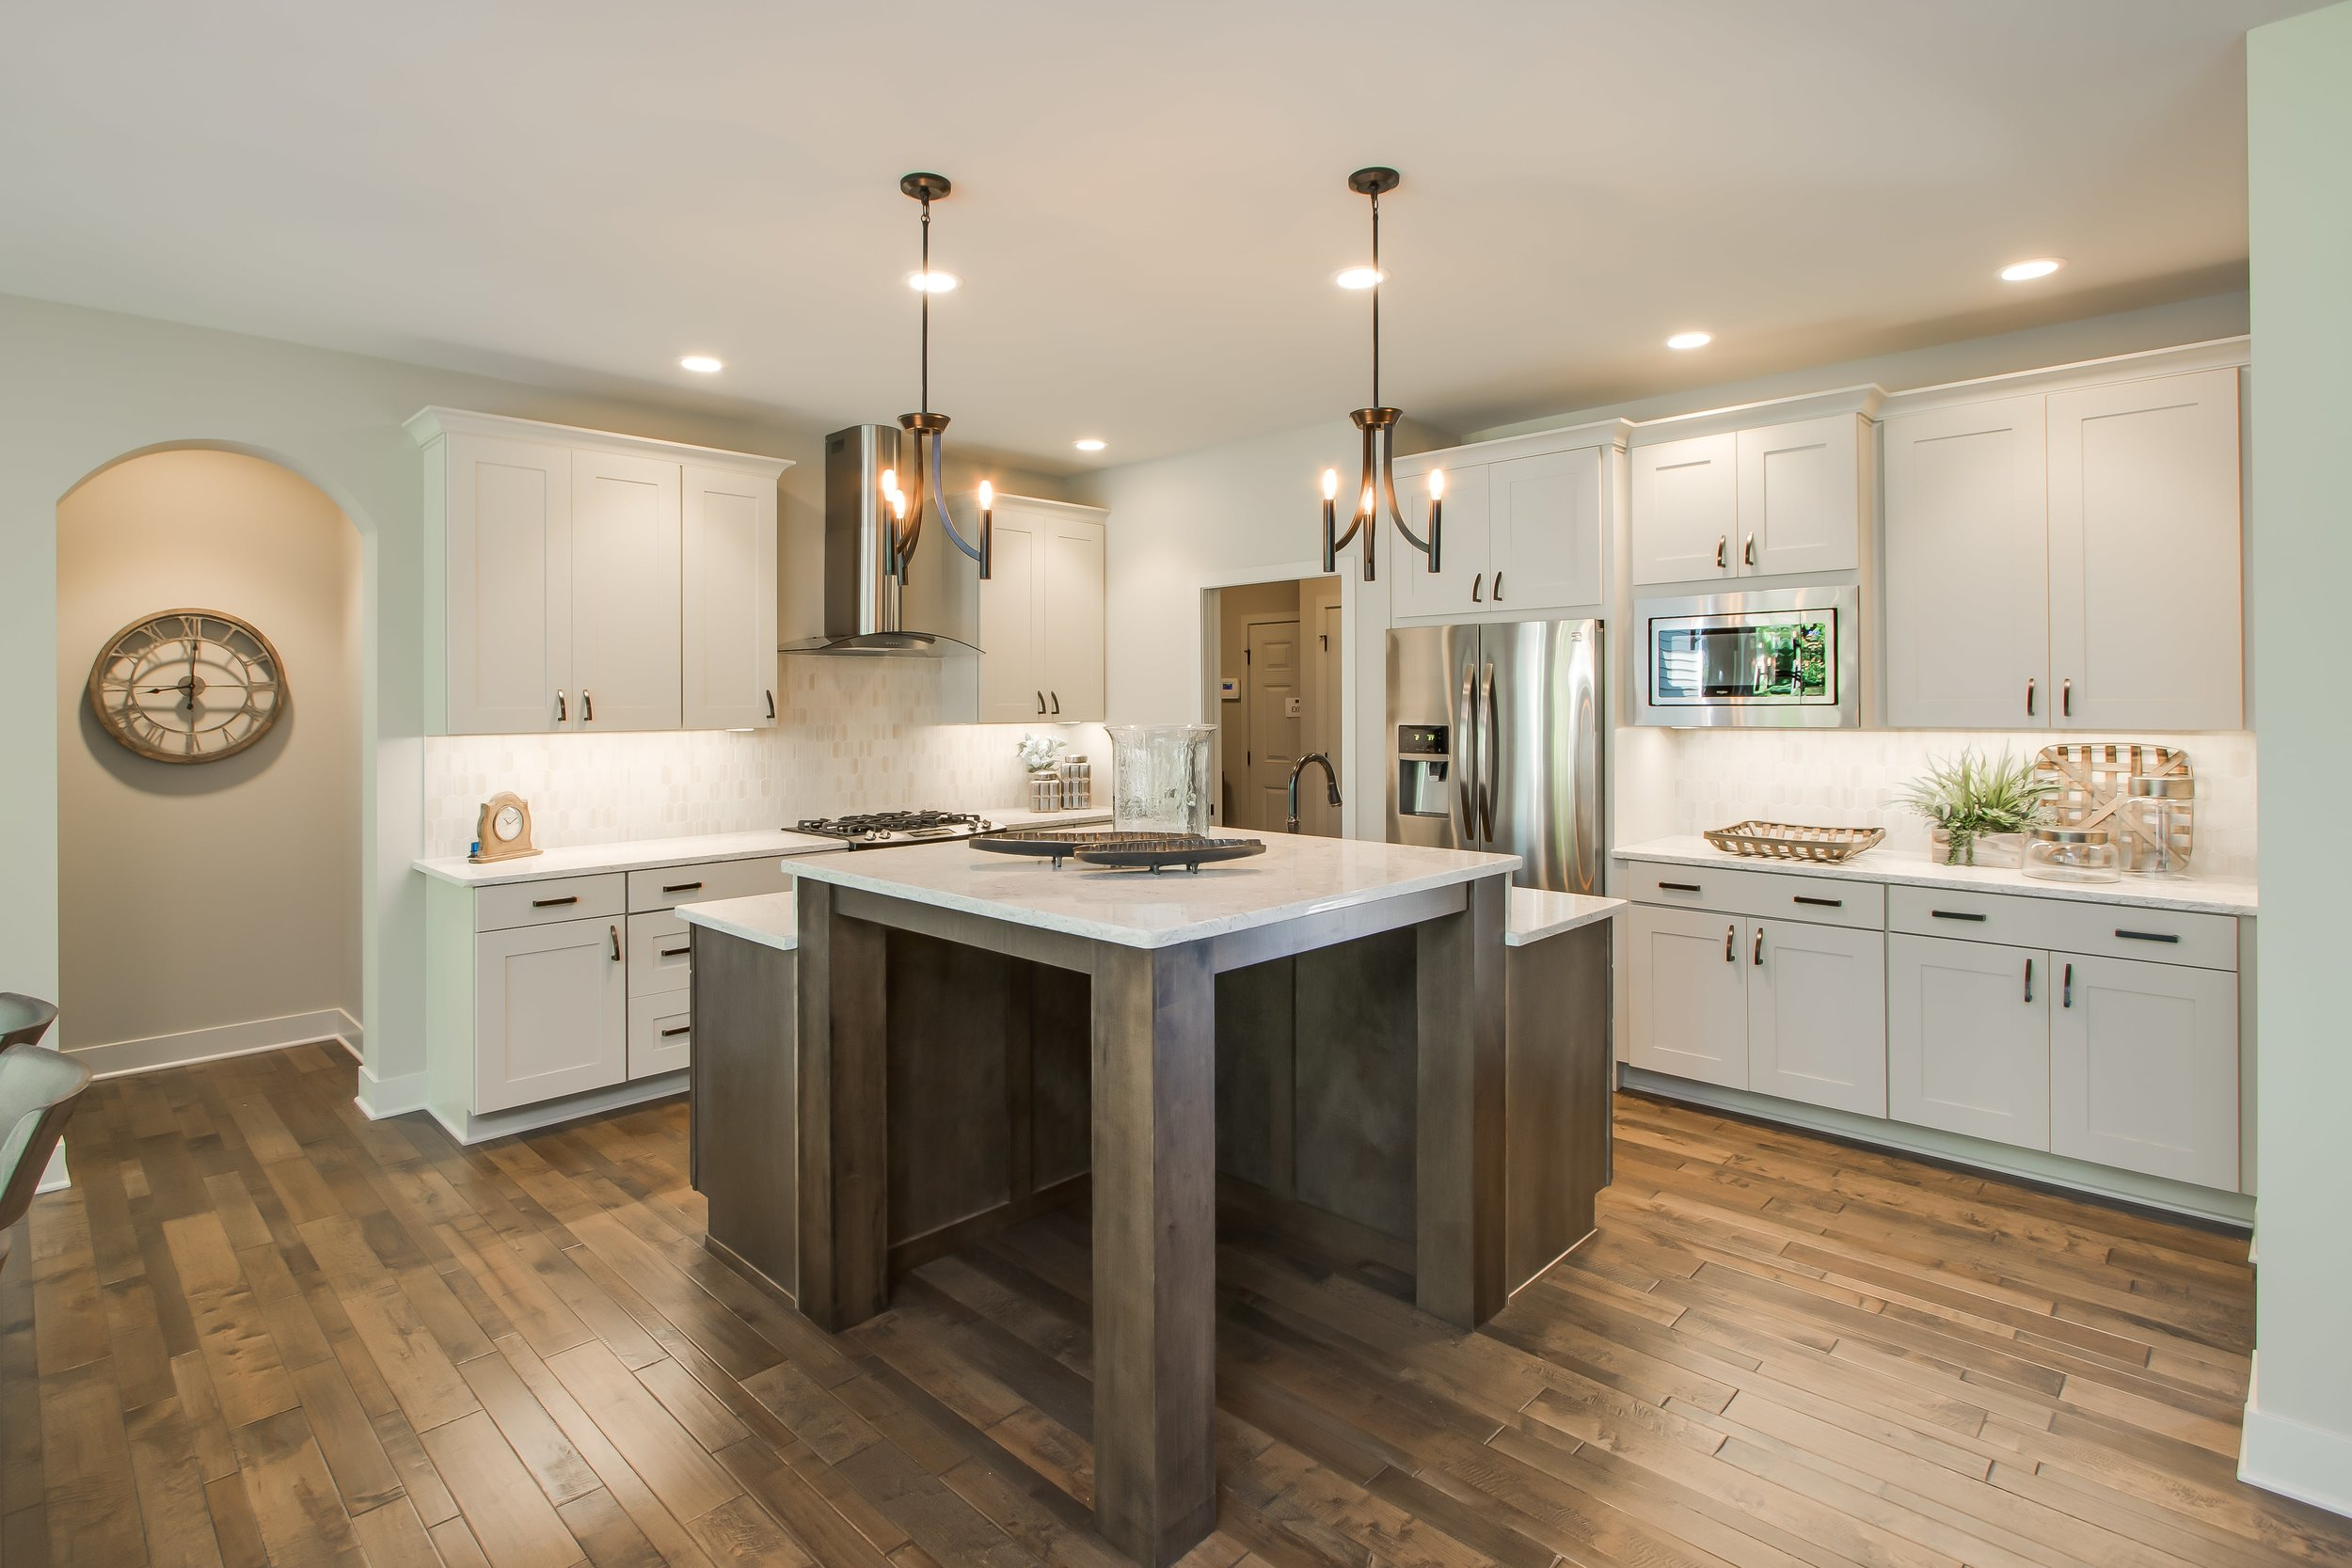 6_15_2017_WW_03_59_Lily_Kitchen_Full+View+of+hardwood+floors,+white+cabinets,+and+island-min[1].JPG